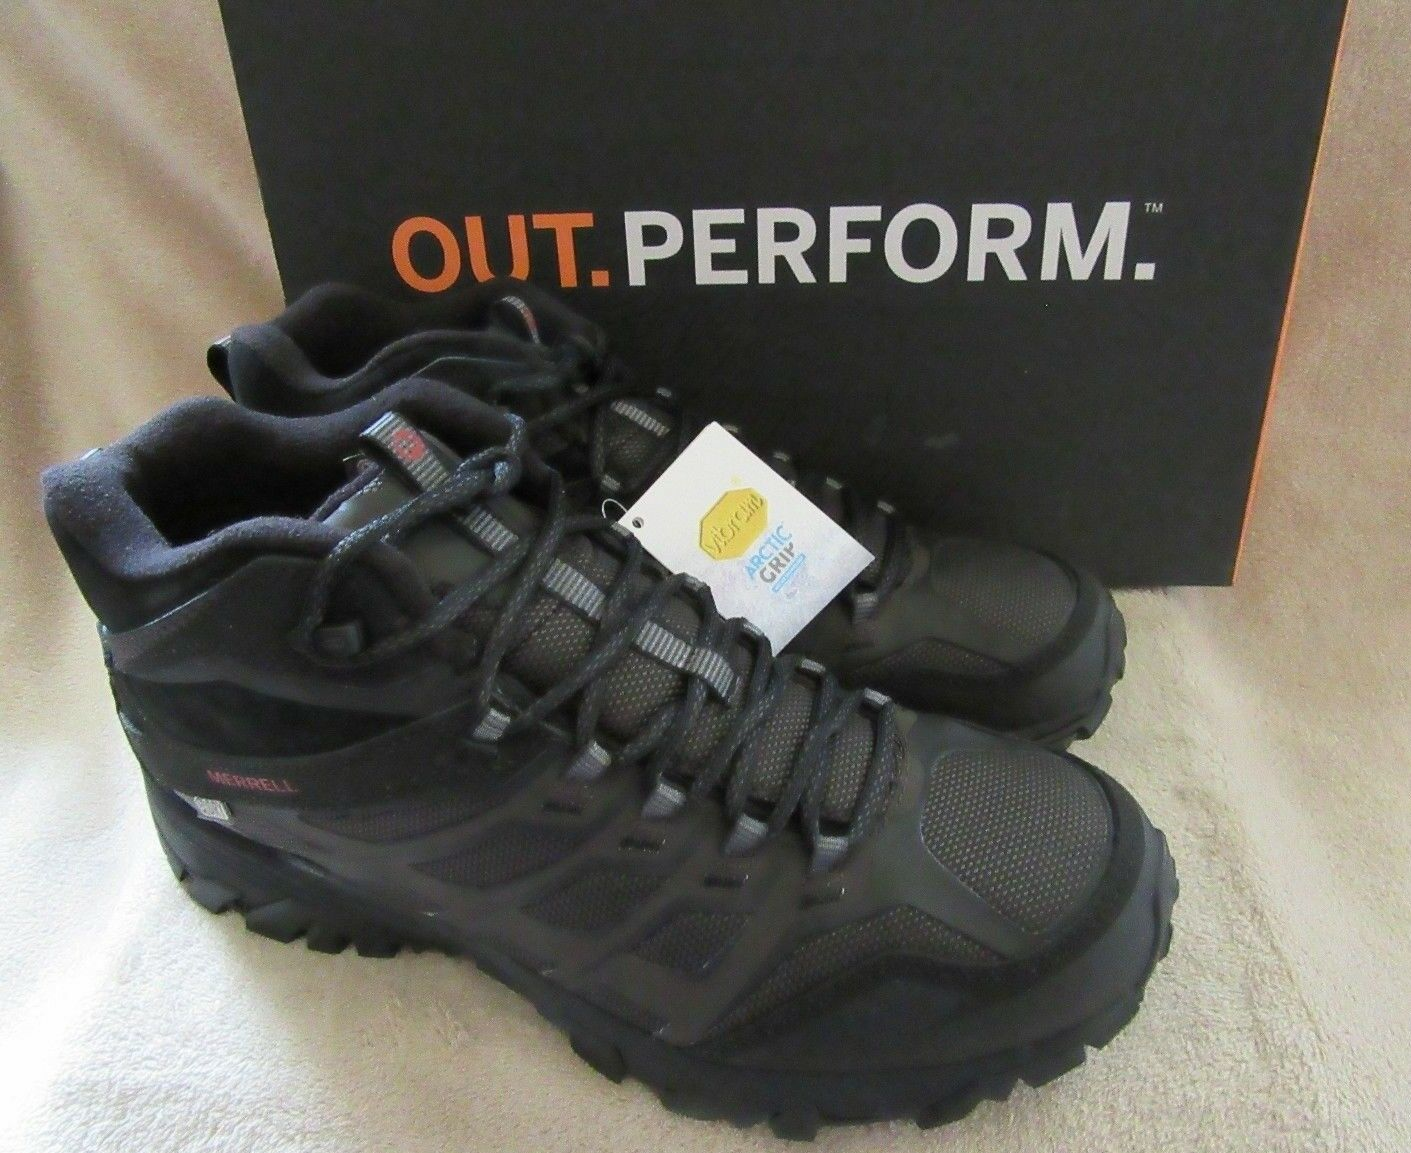 MERRELL J35793 Mens Moab FST Ice+ Thermo Hiking Stiefel schuhe US 11 M EUR 45 NWB